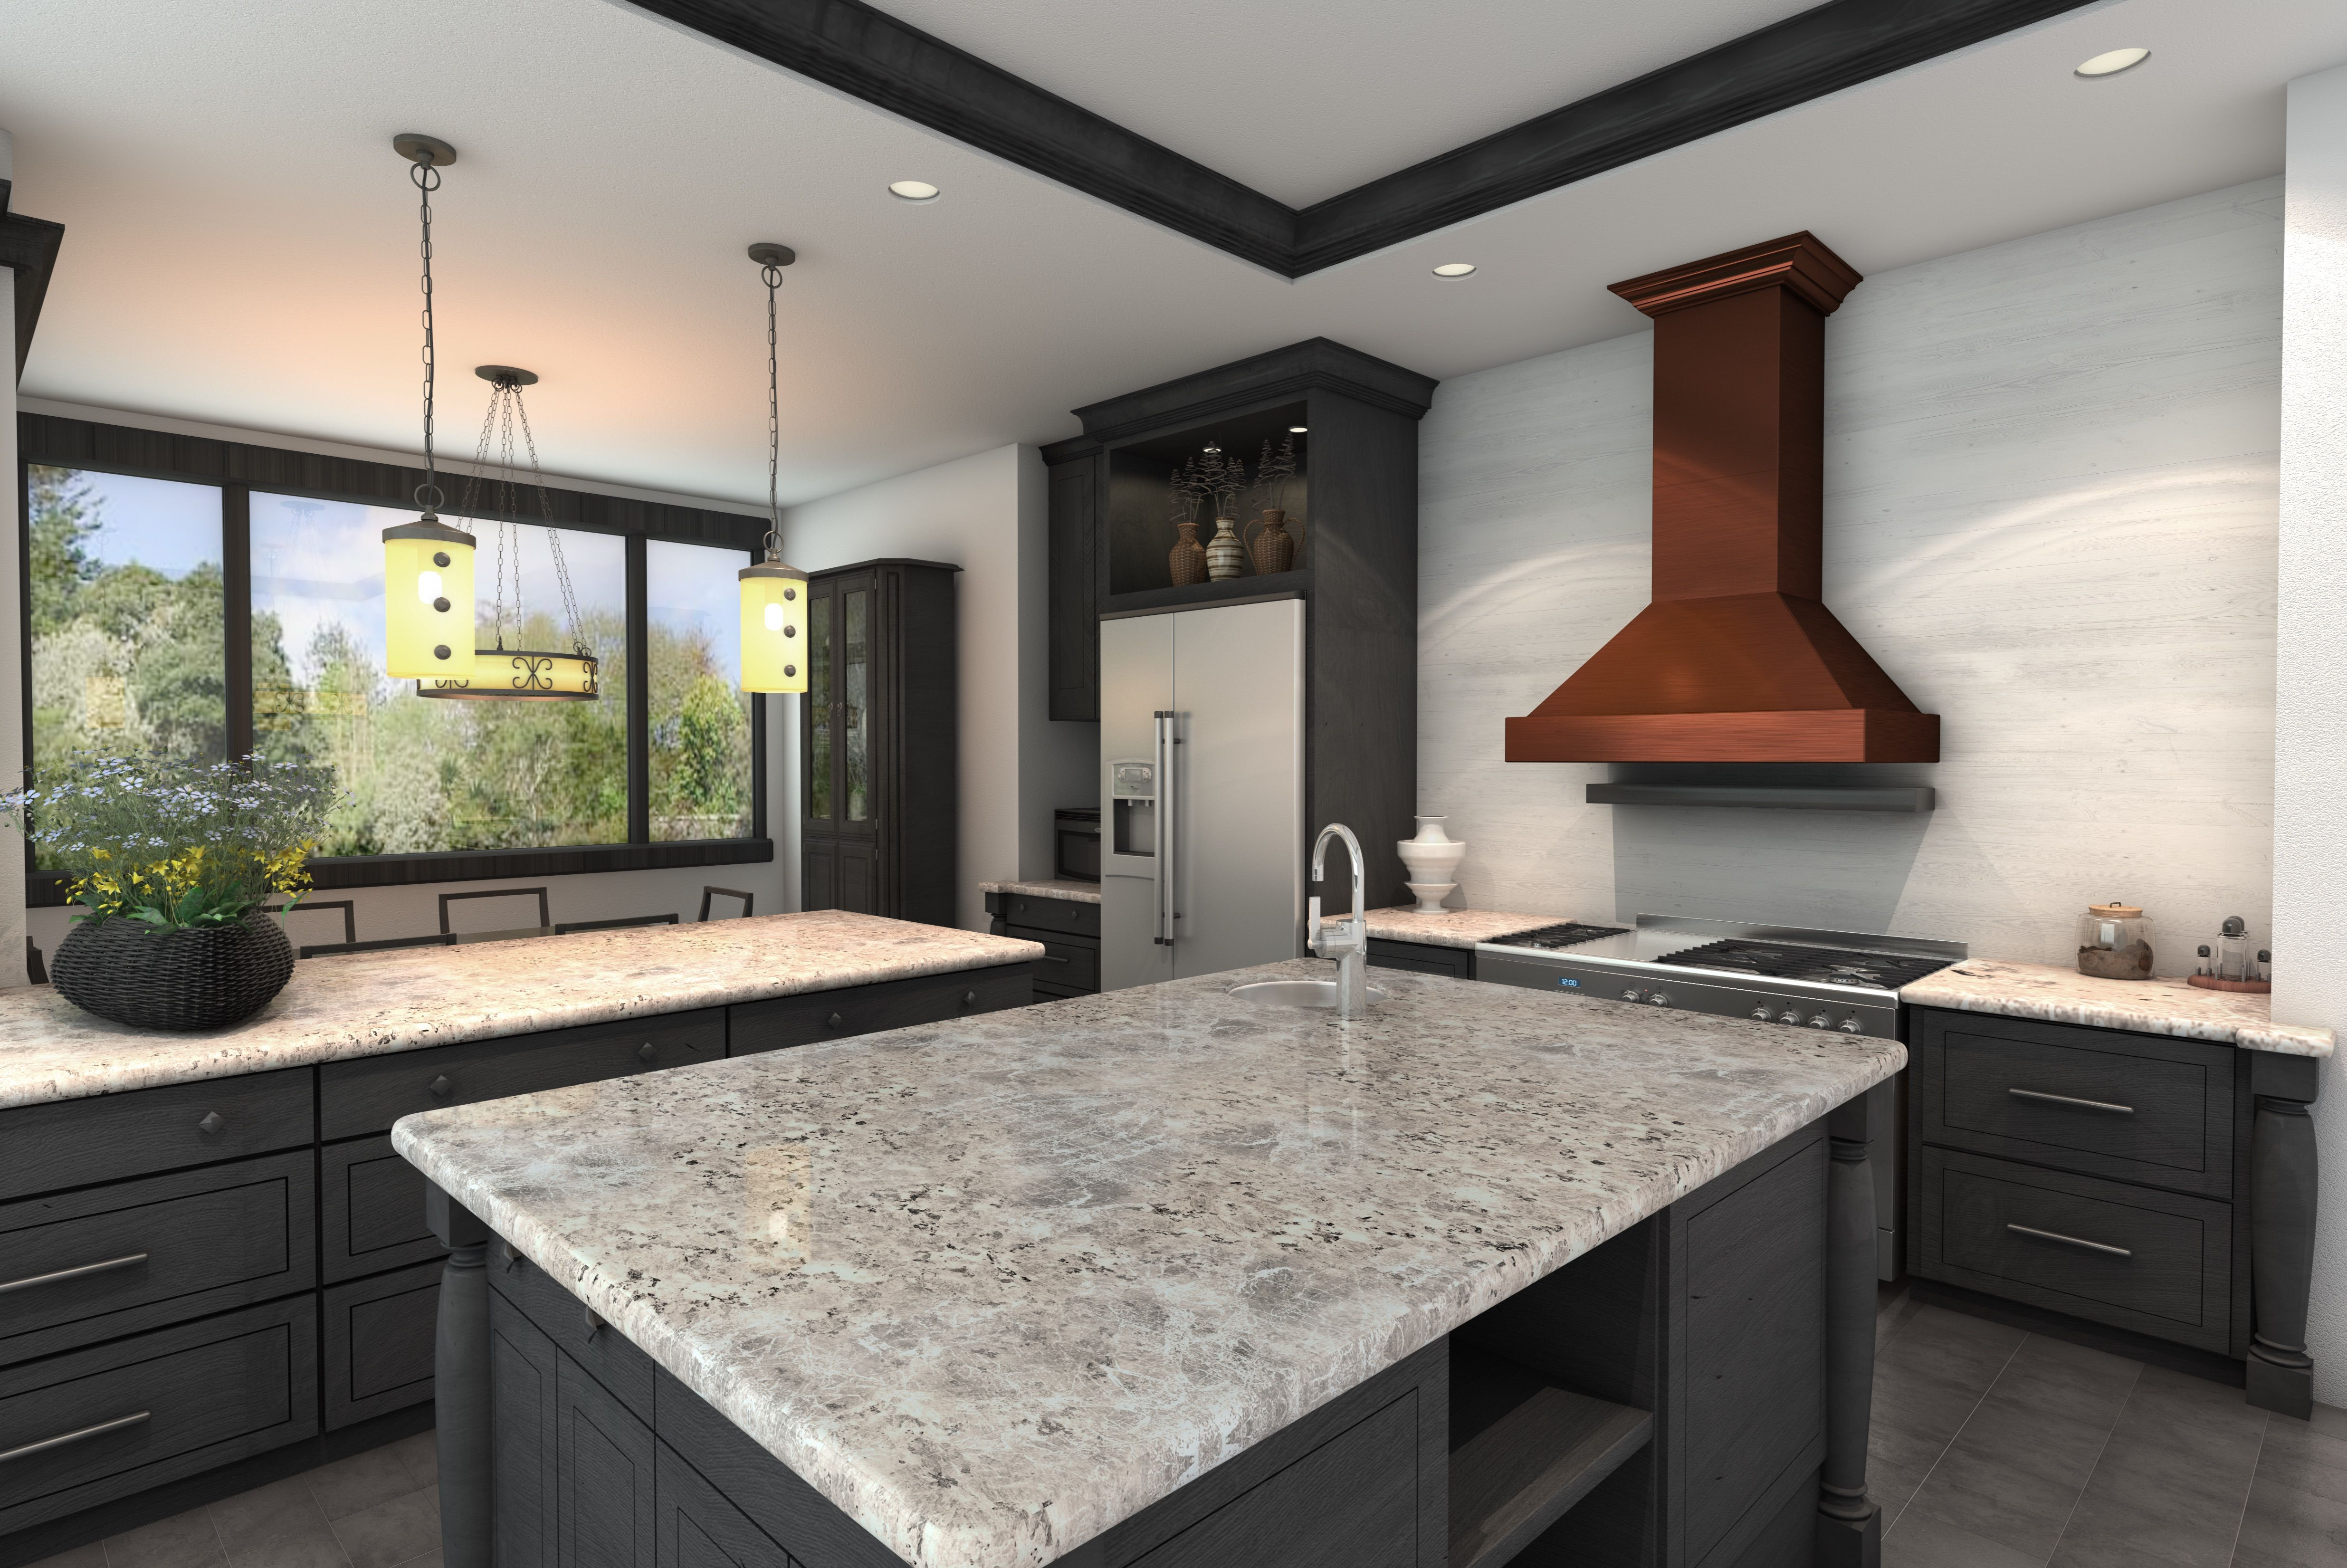 A Beautiful Kitchen Remodel With A Copper Range Hood Gray Cabinets And Granite Countertops Repin If You Range Hood Stainless Range Hood Wall Mount Range Hood